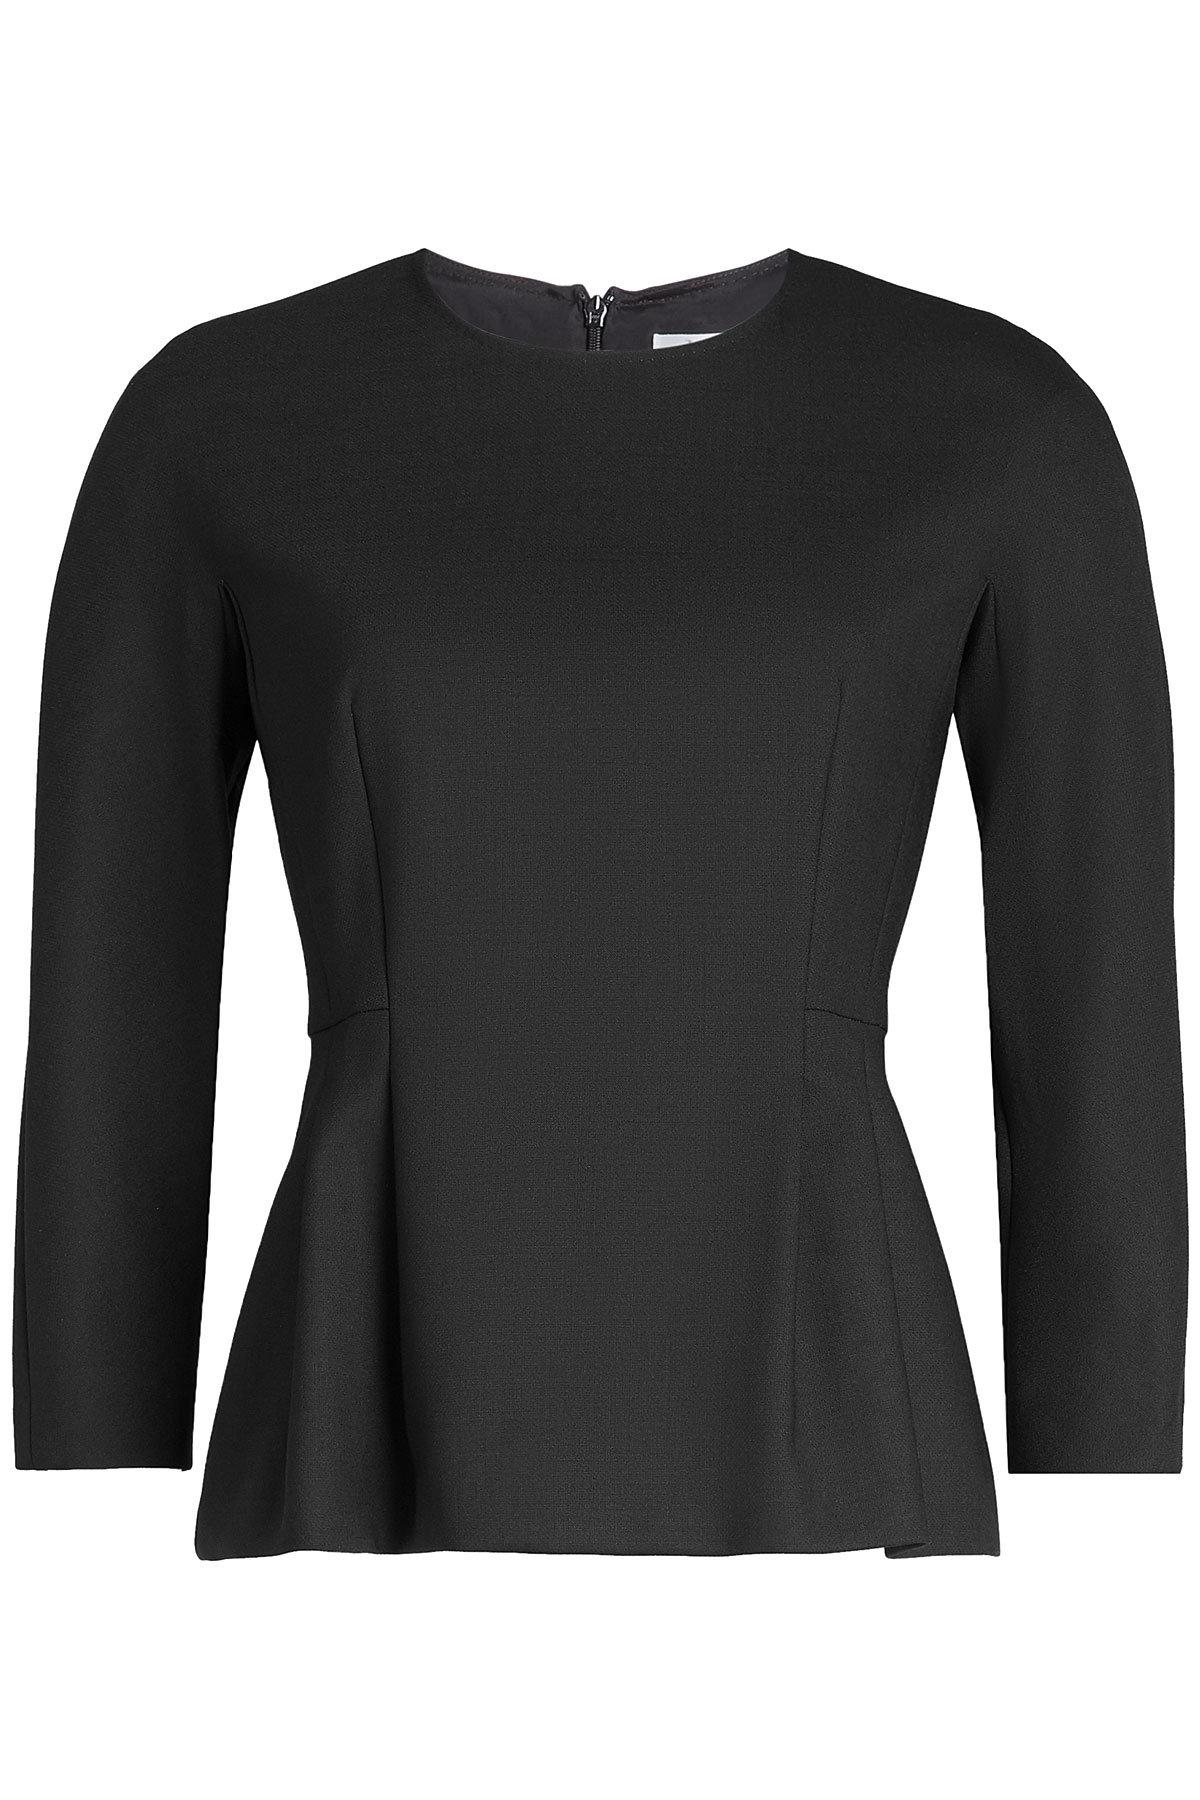 Max Mara Virgin Wool Top In Black